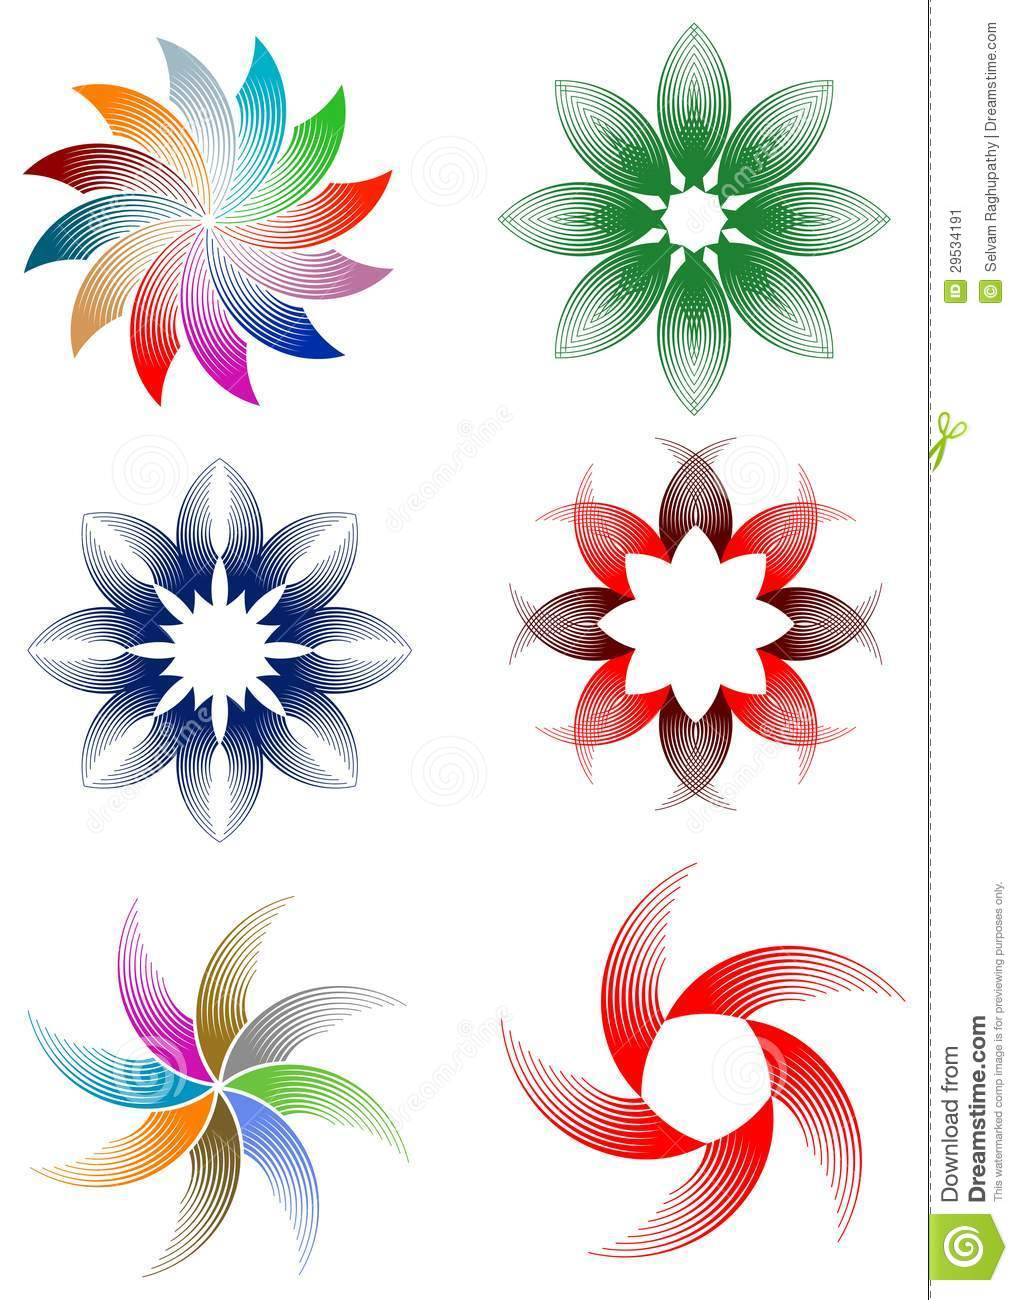 Flowers design set